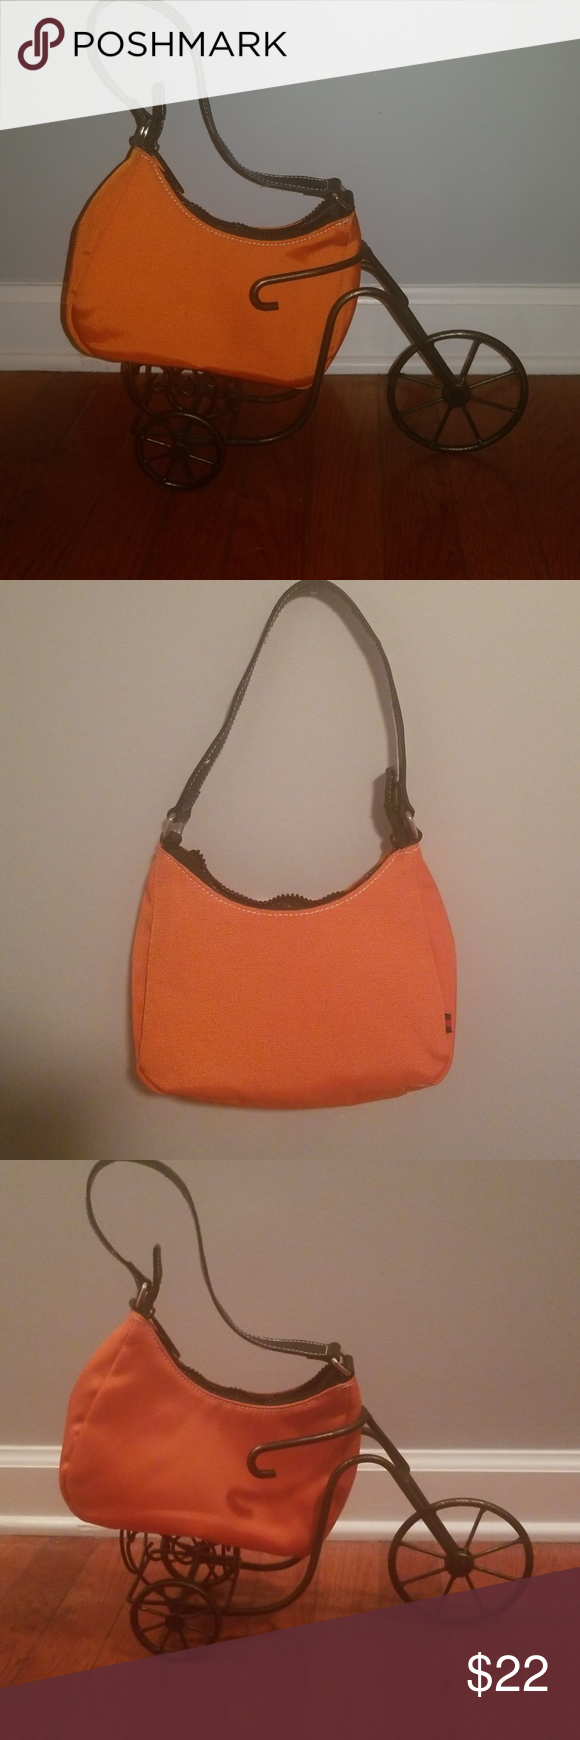 f1779e4299b Tommy Hilfiger Small nylon purse orange bag Very good, pre owned condition.  Has main